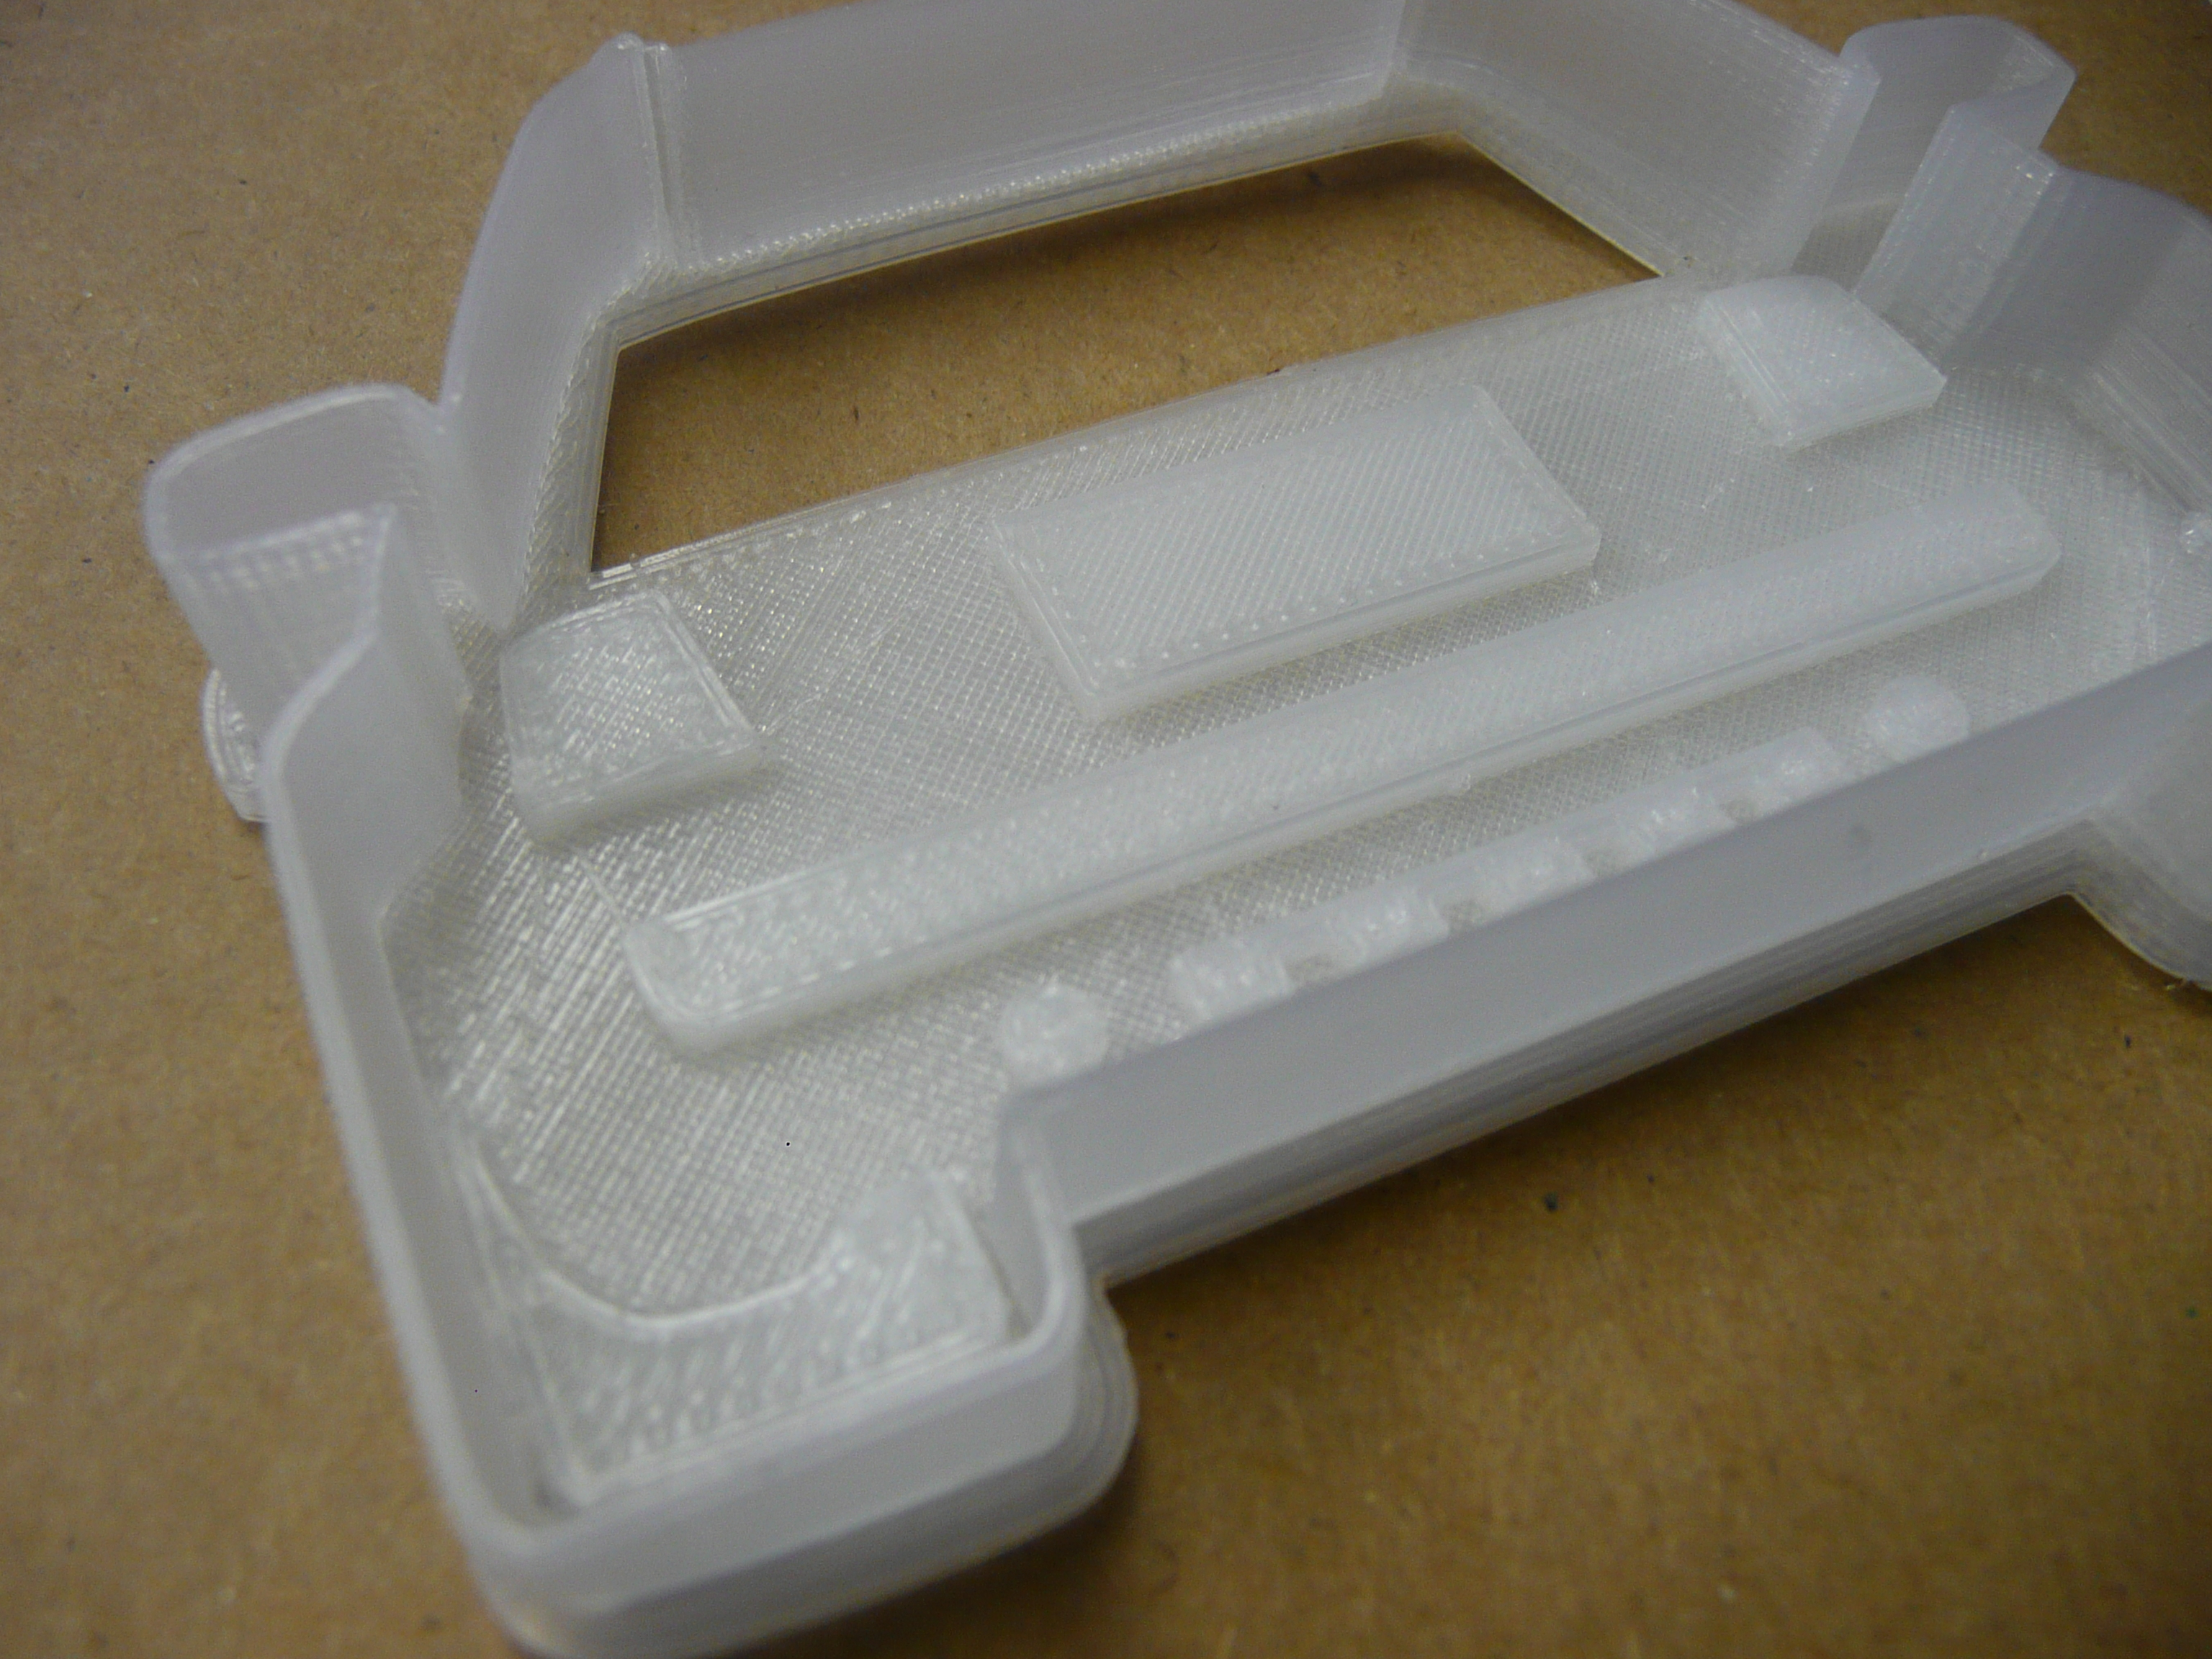 Fun/Project: Audi Allroad Cookie Cutter now available for purchase!